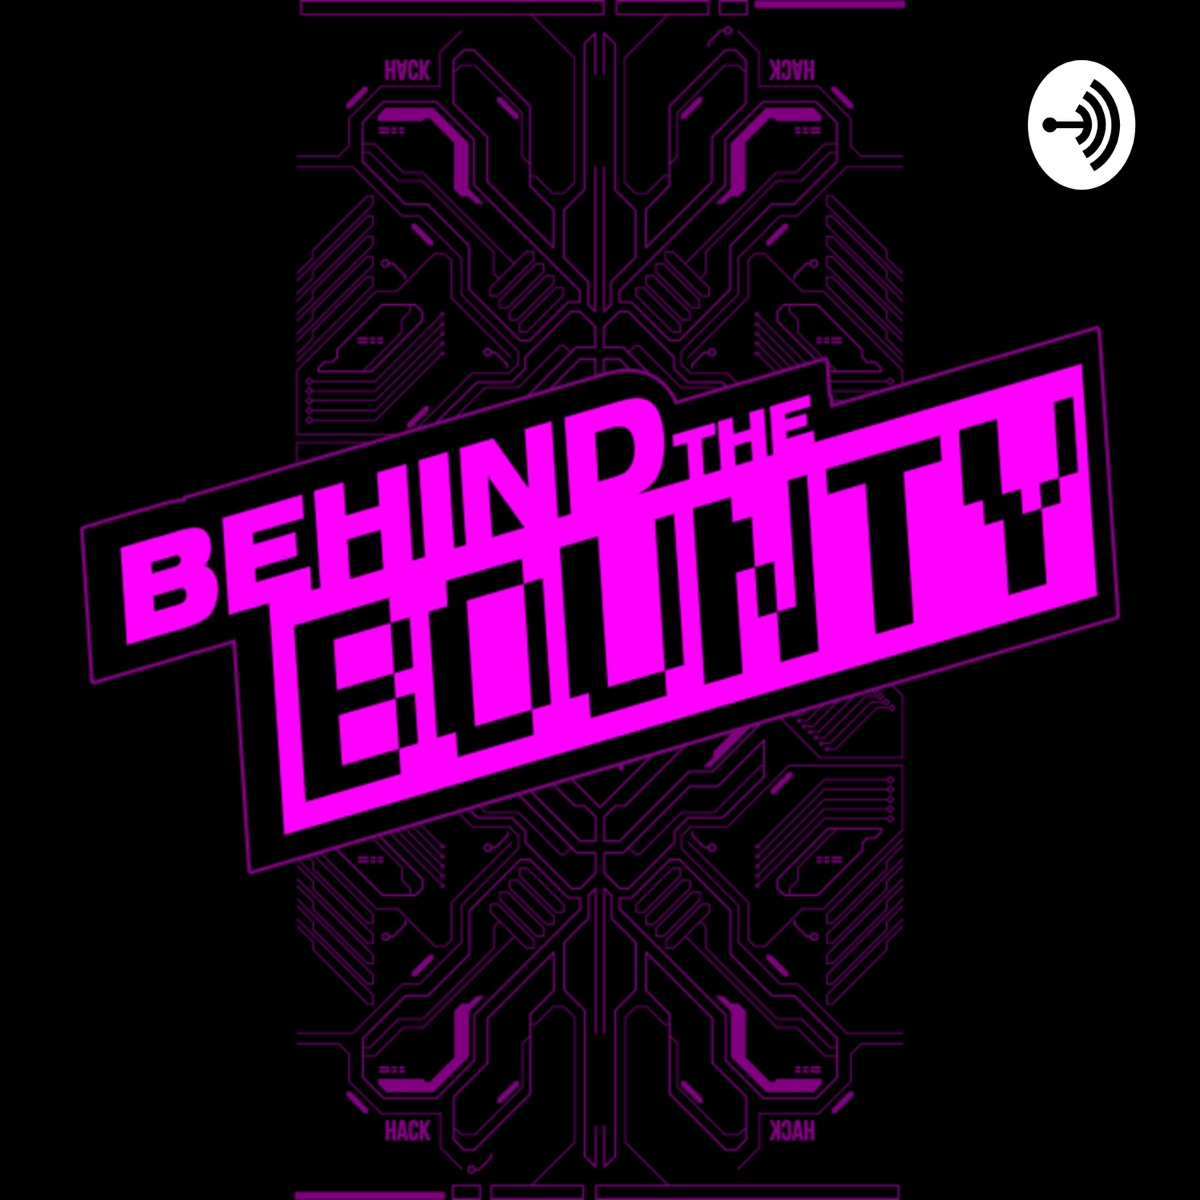 Behind The Bounty